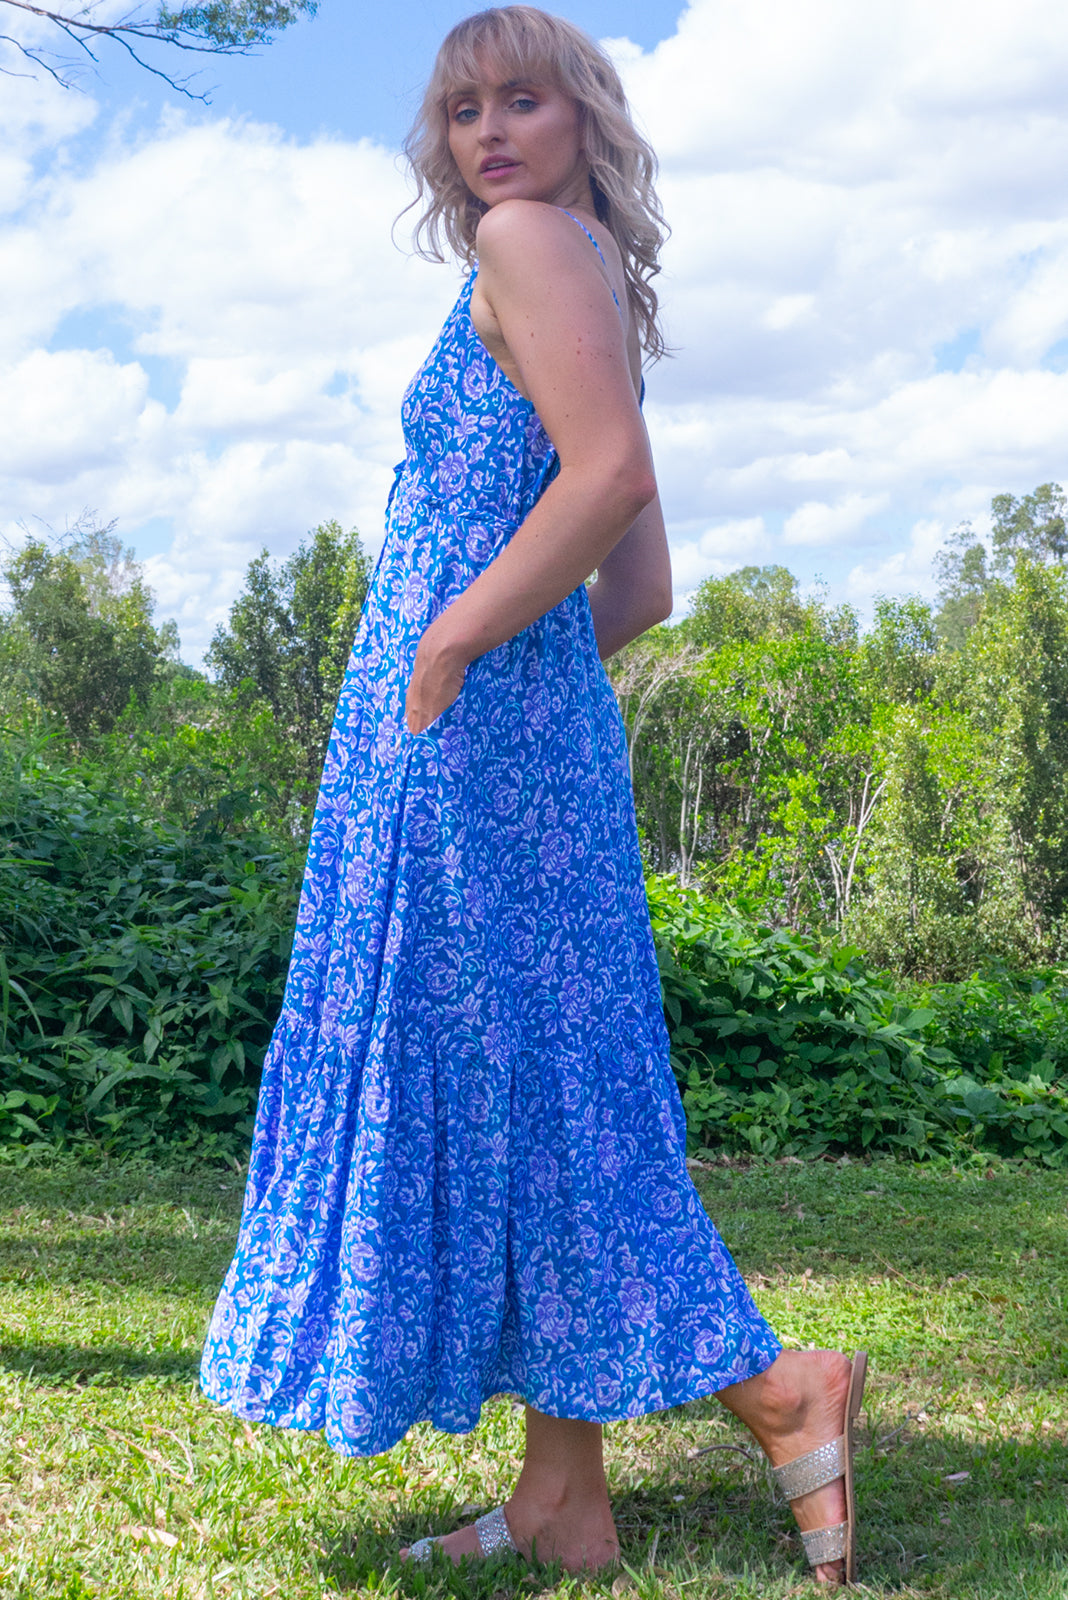 The Adoro Turquoise Fleur Maxi Dress features bust area lined, V neck and back, drawstring under bust, thin straps, side pockets, frill at base of skirt and 100% rayon in blue base with white and purple floral print.